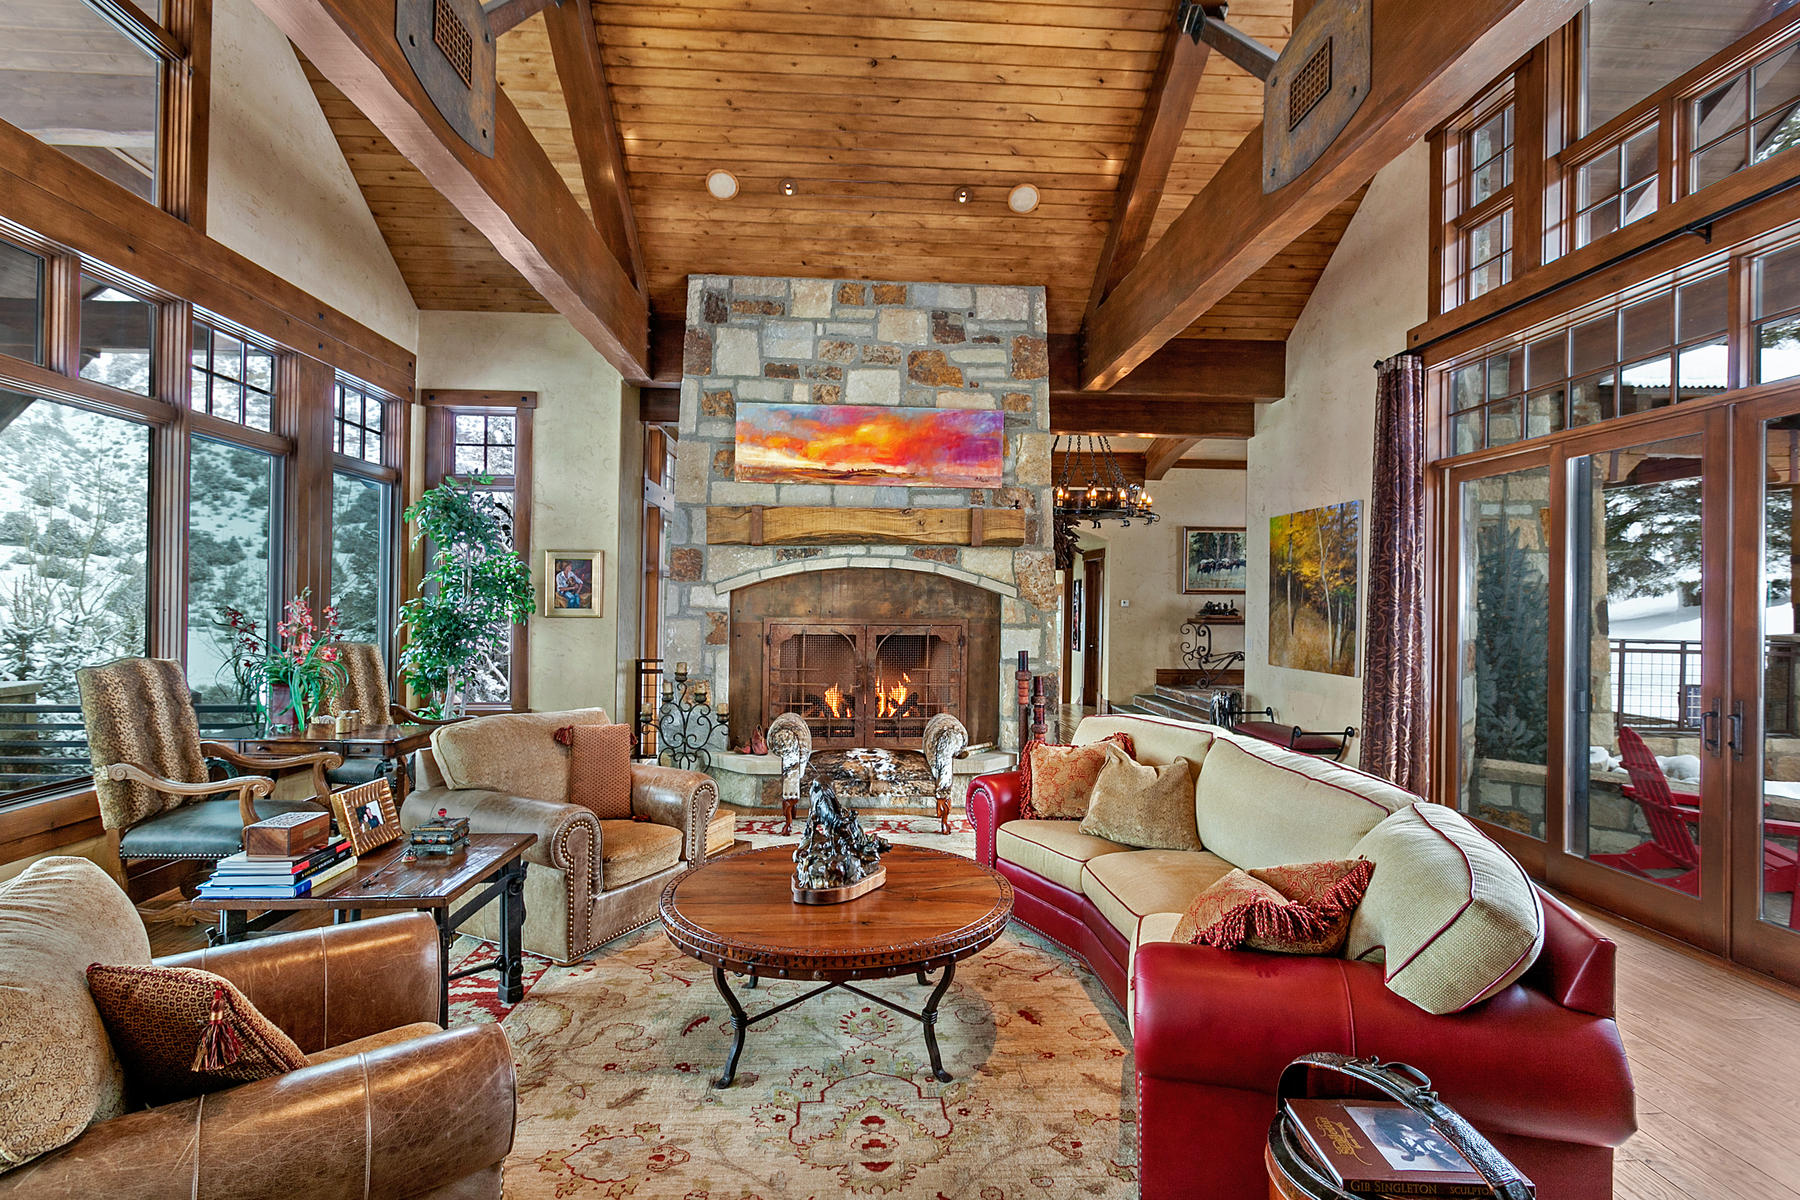 Single Family Home for Active at Cordillera Custom Home 605 Andorra Road Edwards, Colorado 81632 United States